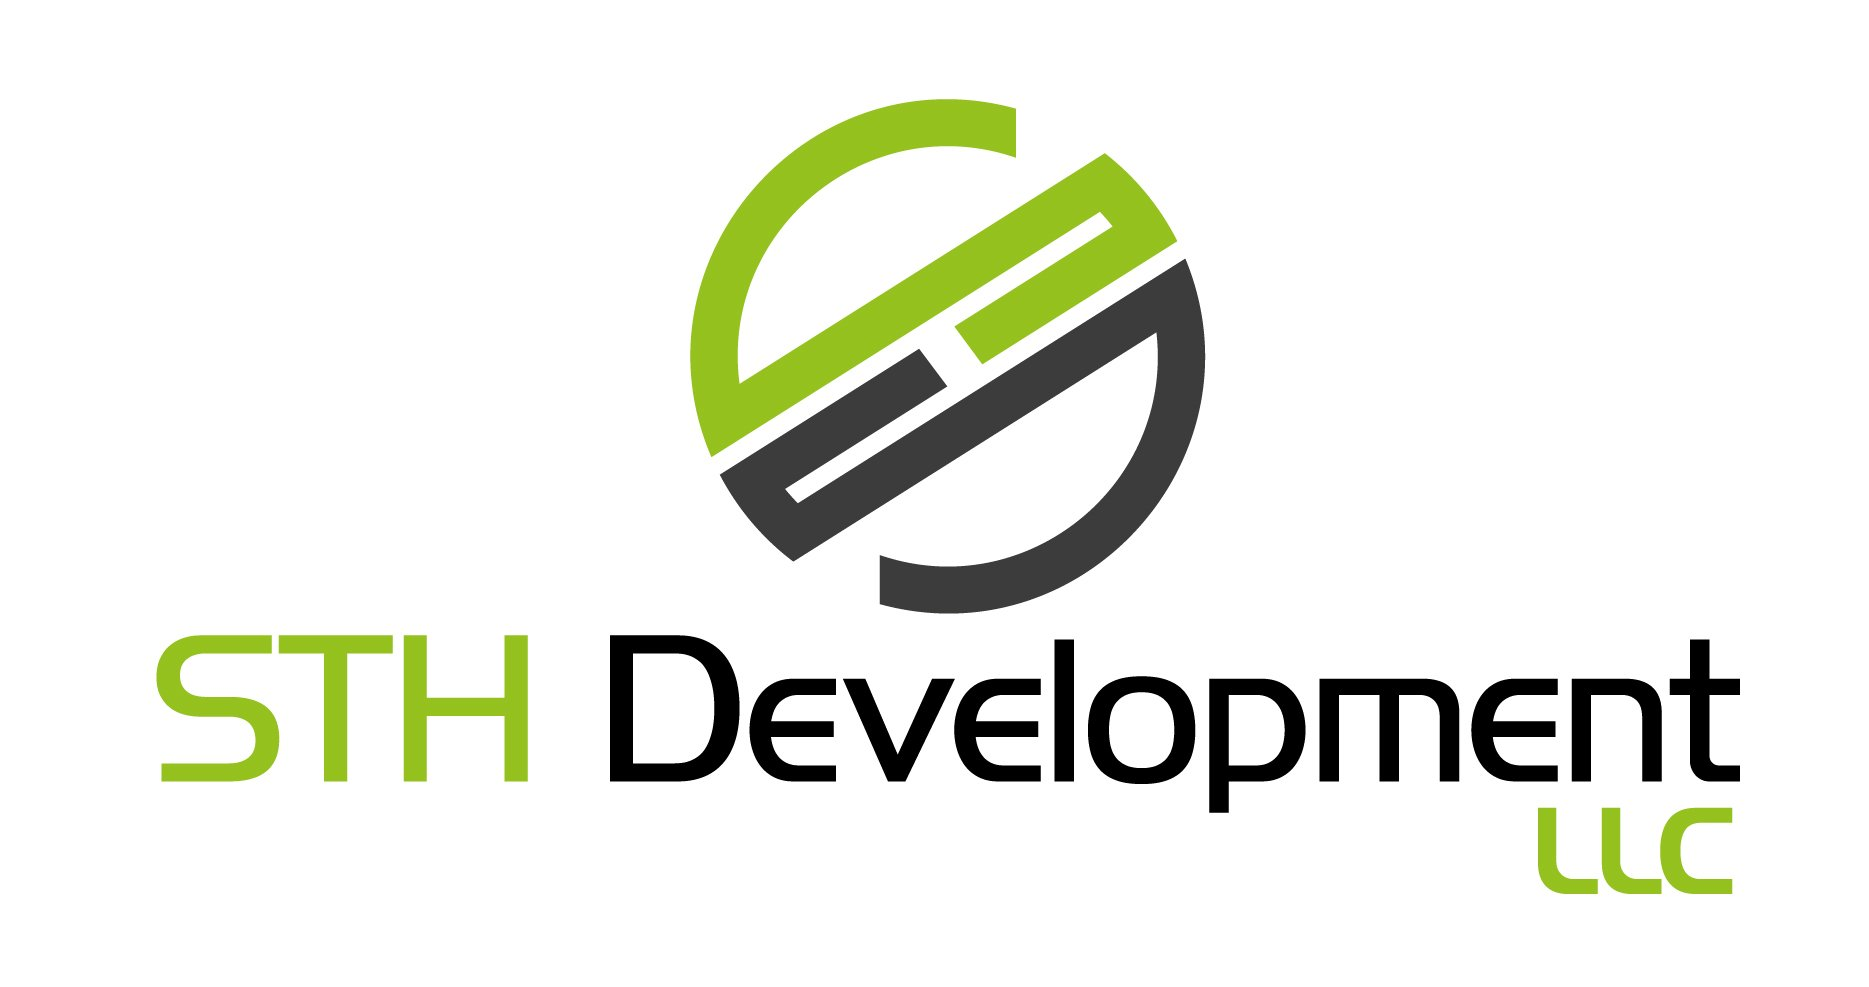 STH Development LLC logo